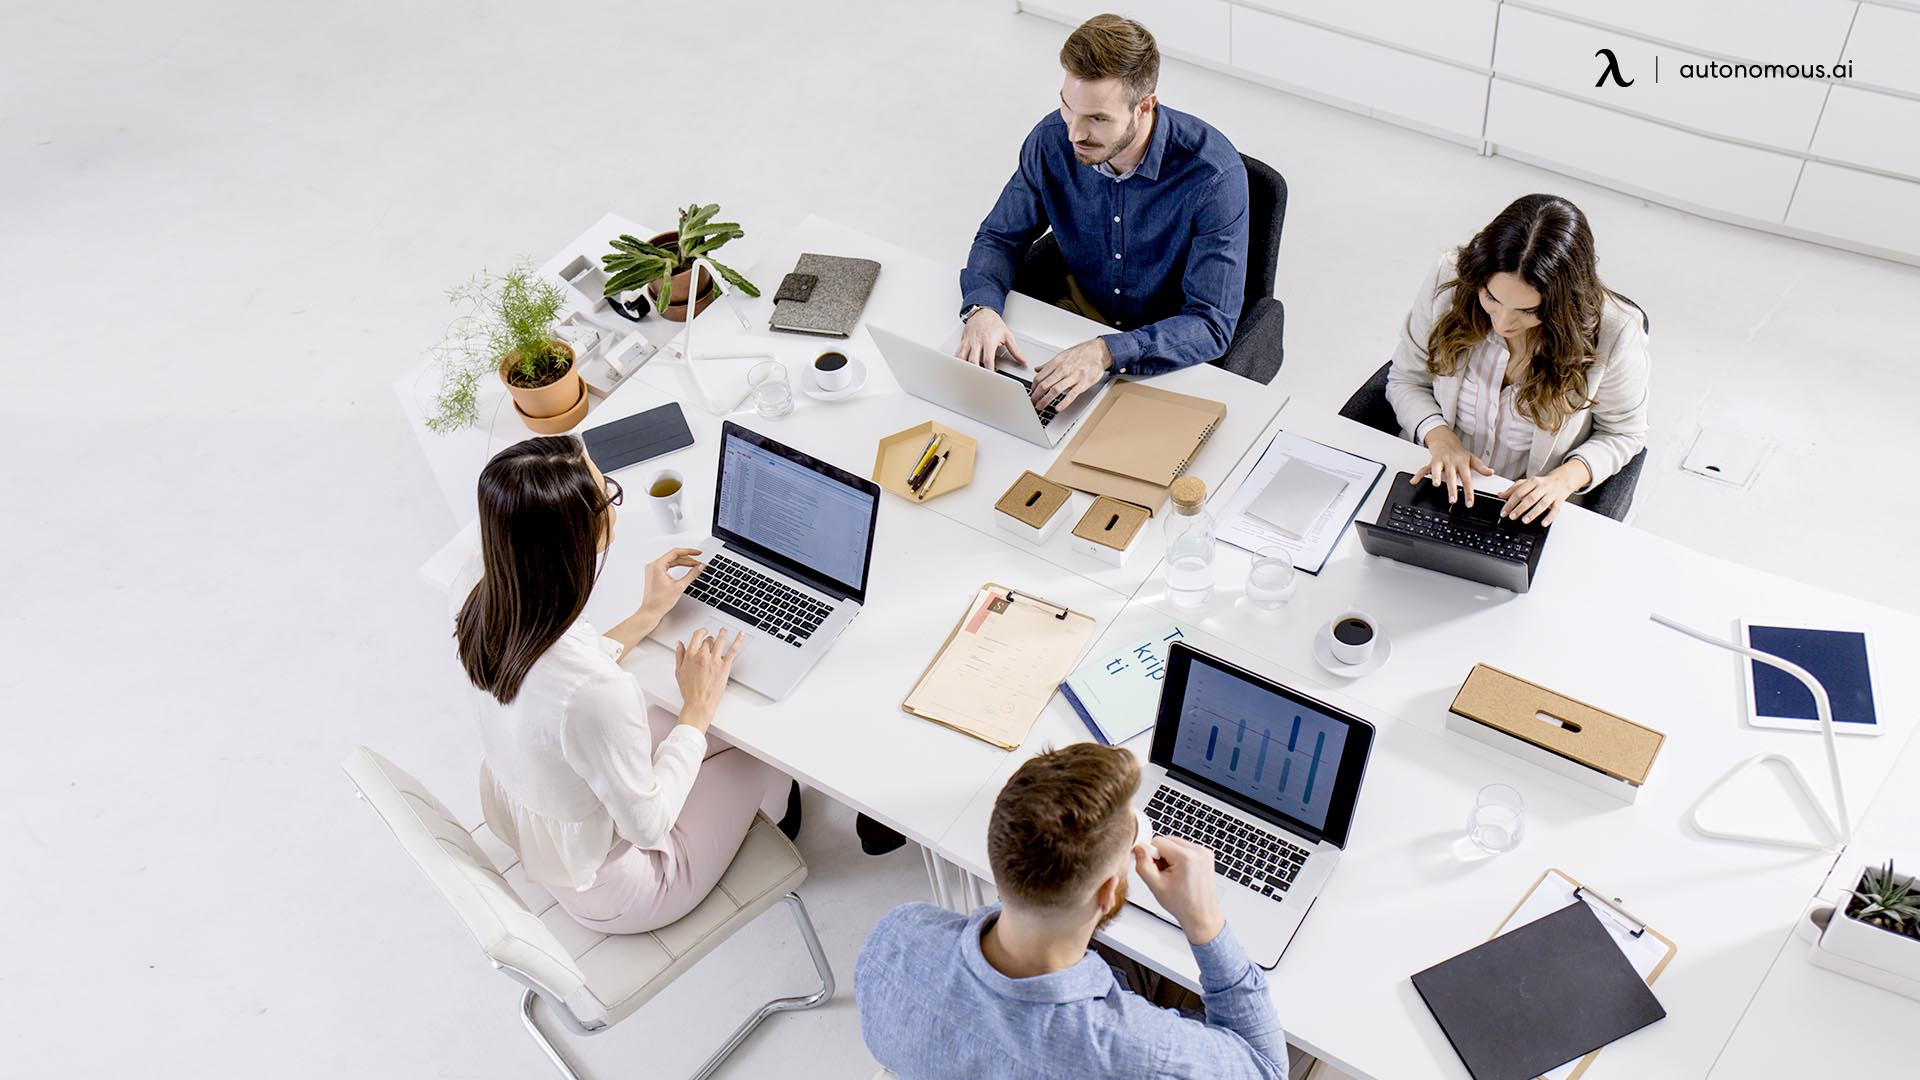 Flexible workspaces provide companies and employees with new ways of working.